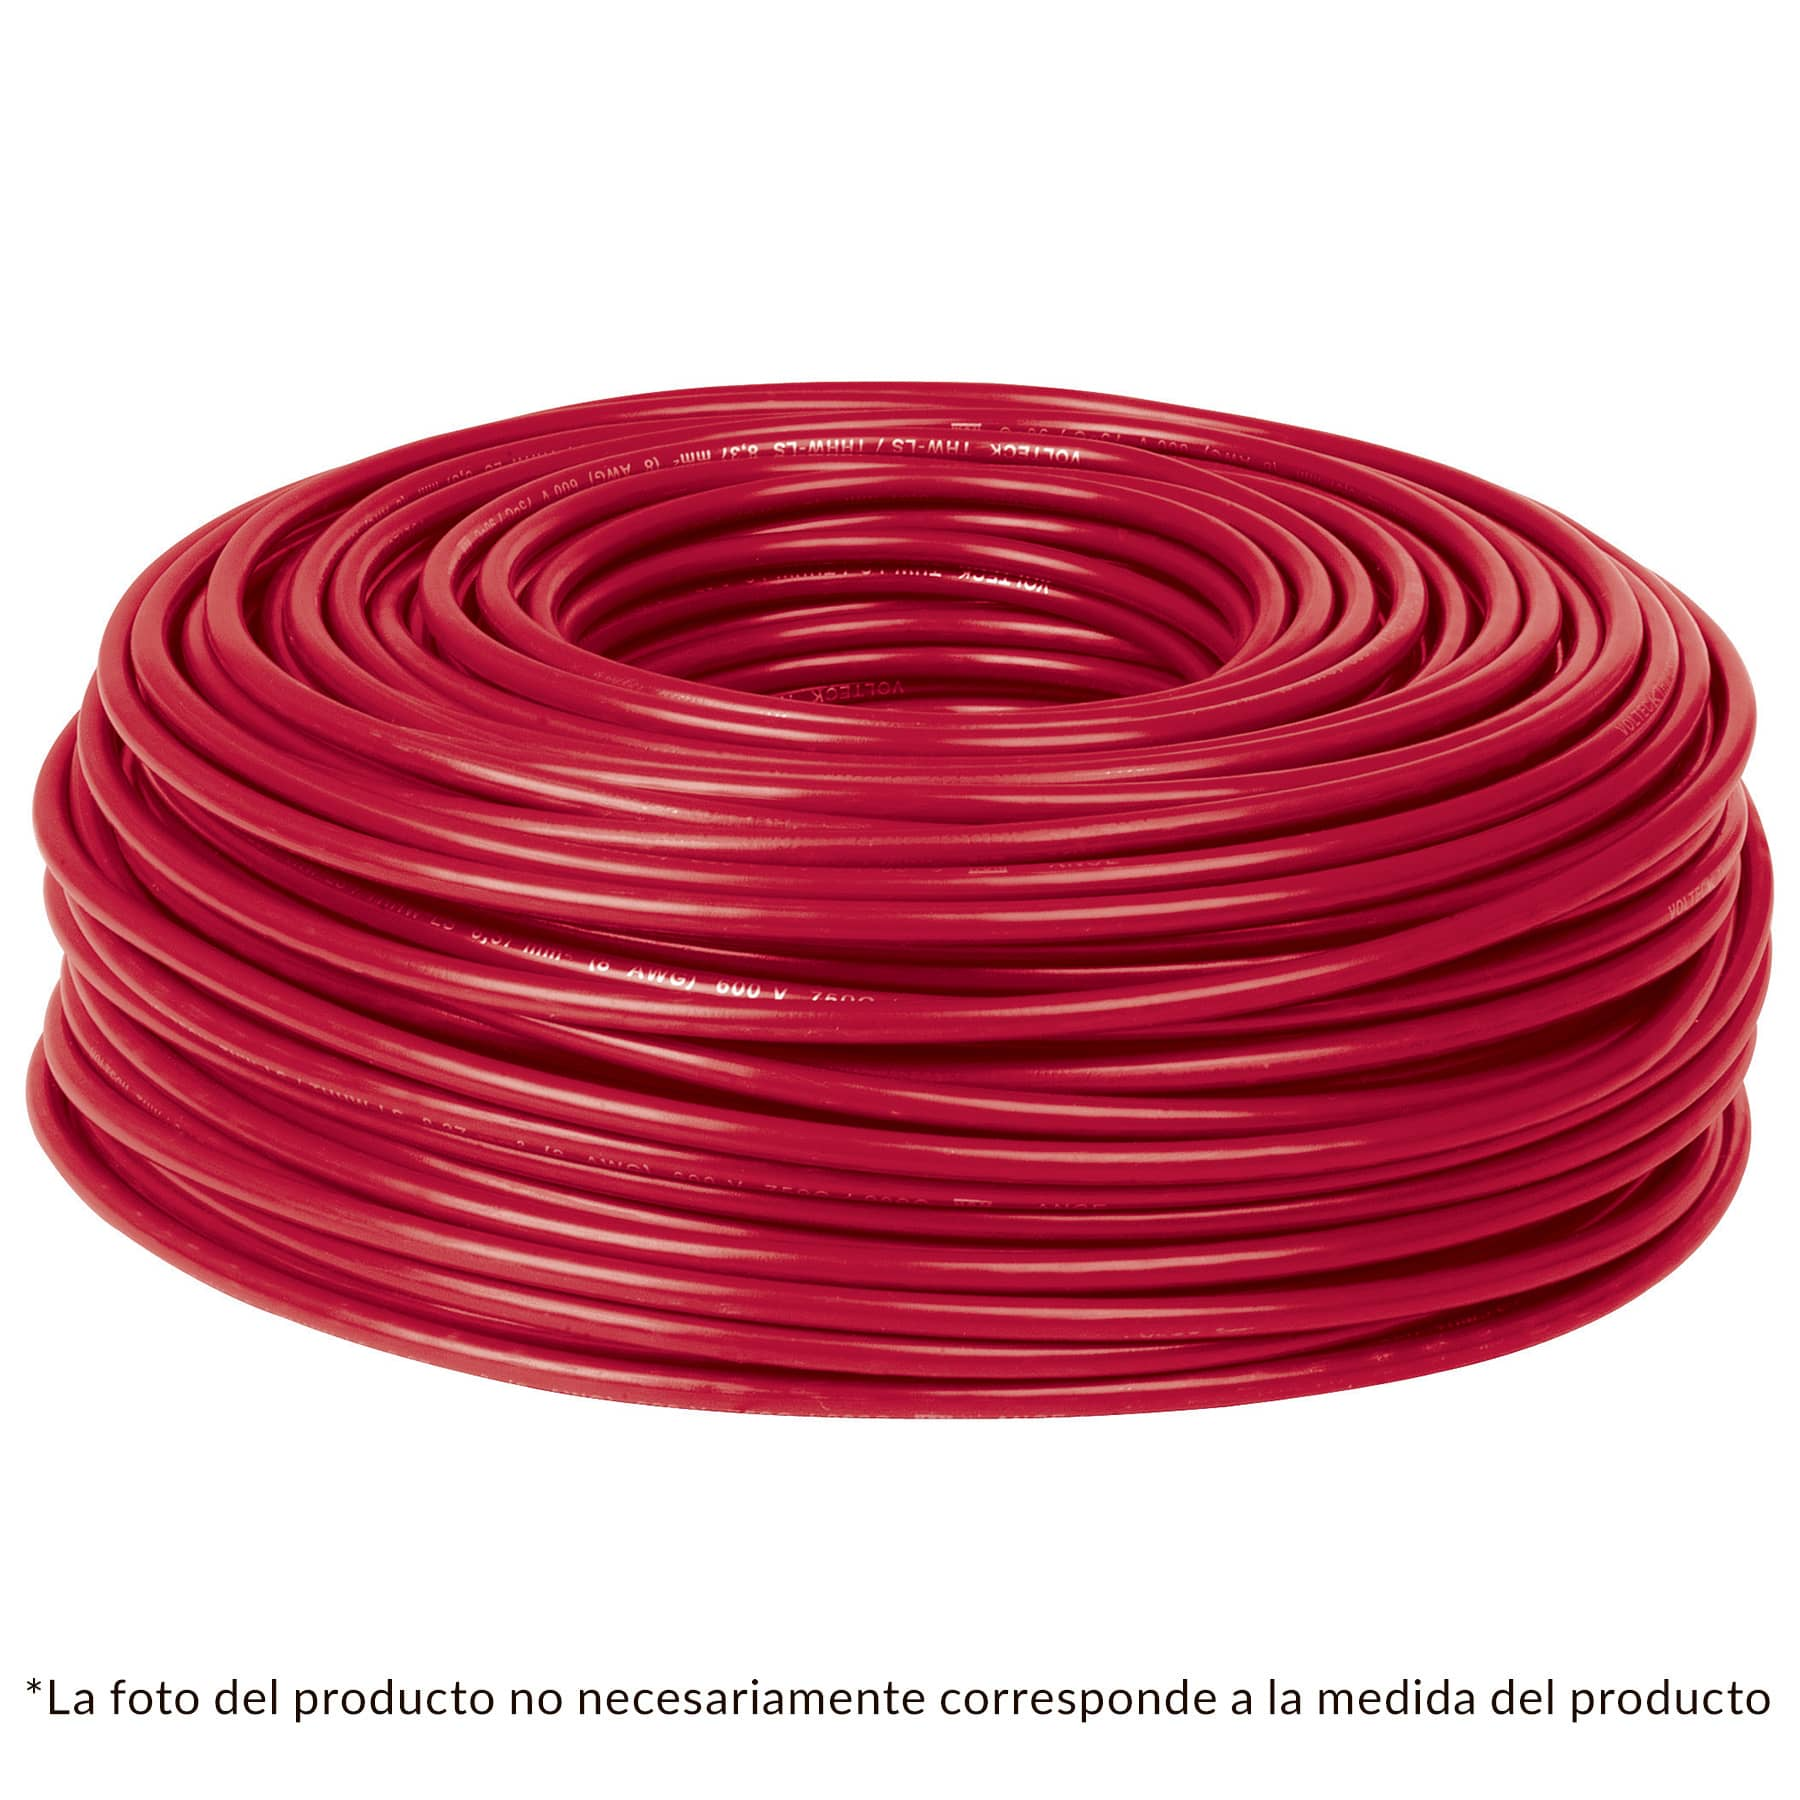 Cable THHW-LS, 10 AWG, color rojo rollo 100 m